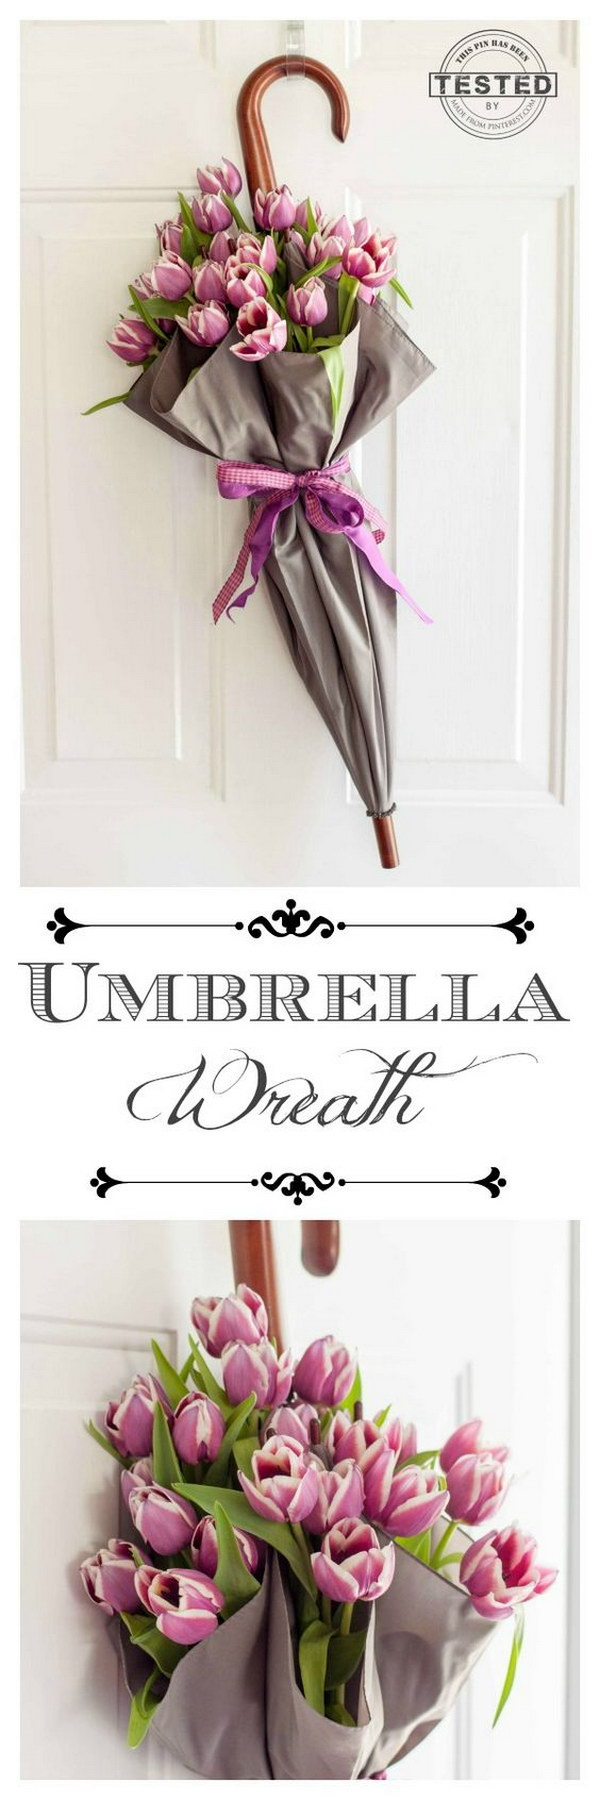 DIY Umbrella Spring Wreath